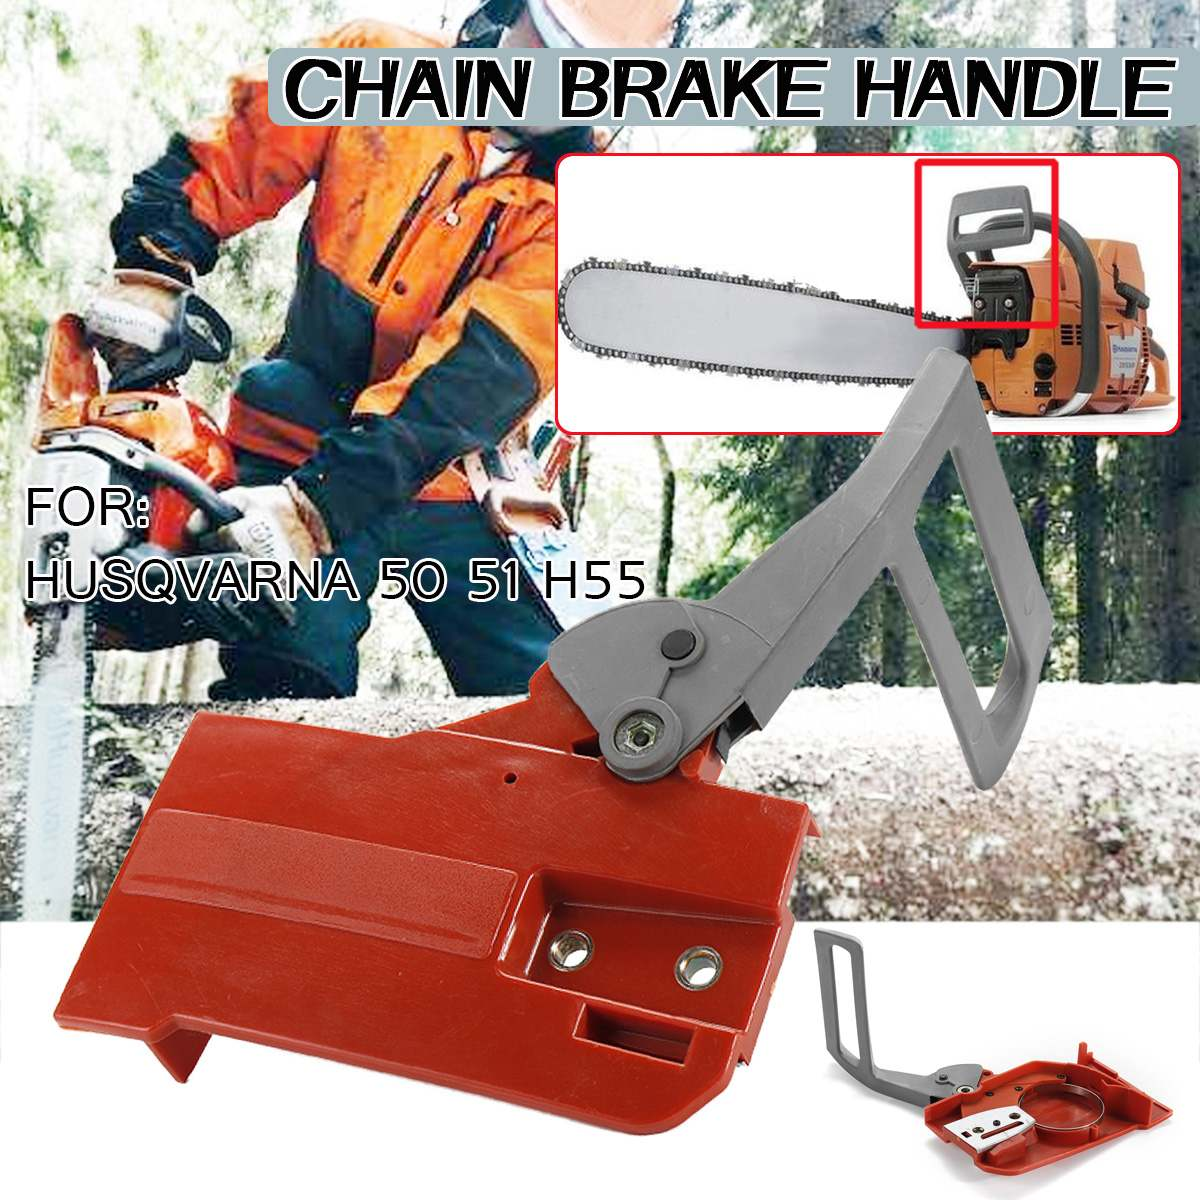 Chainsaw China Brake Handle Brake Cover Assy For Husqvarna 50 51 H55 Chain Saw Replacement Accessories